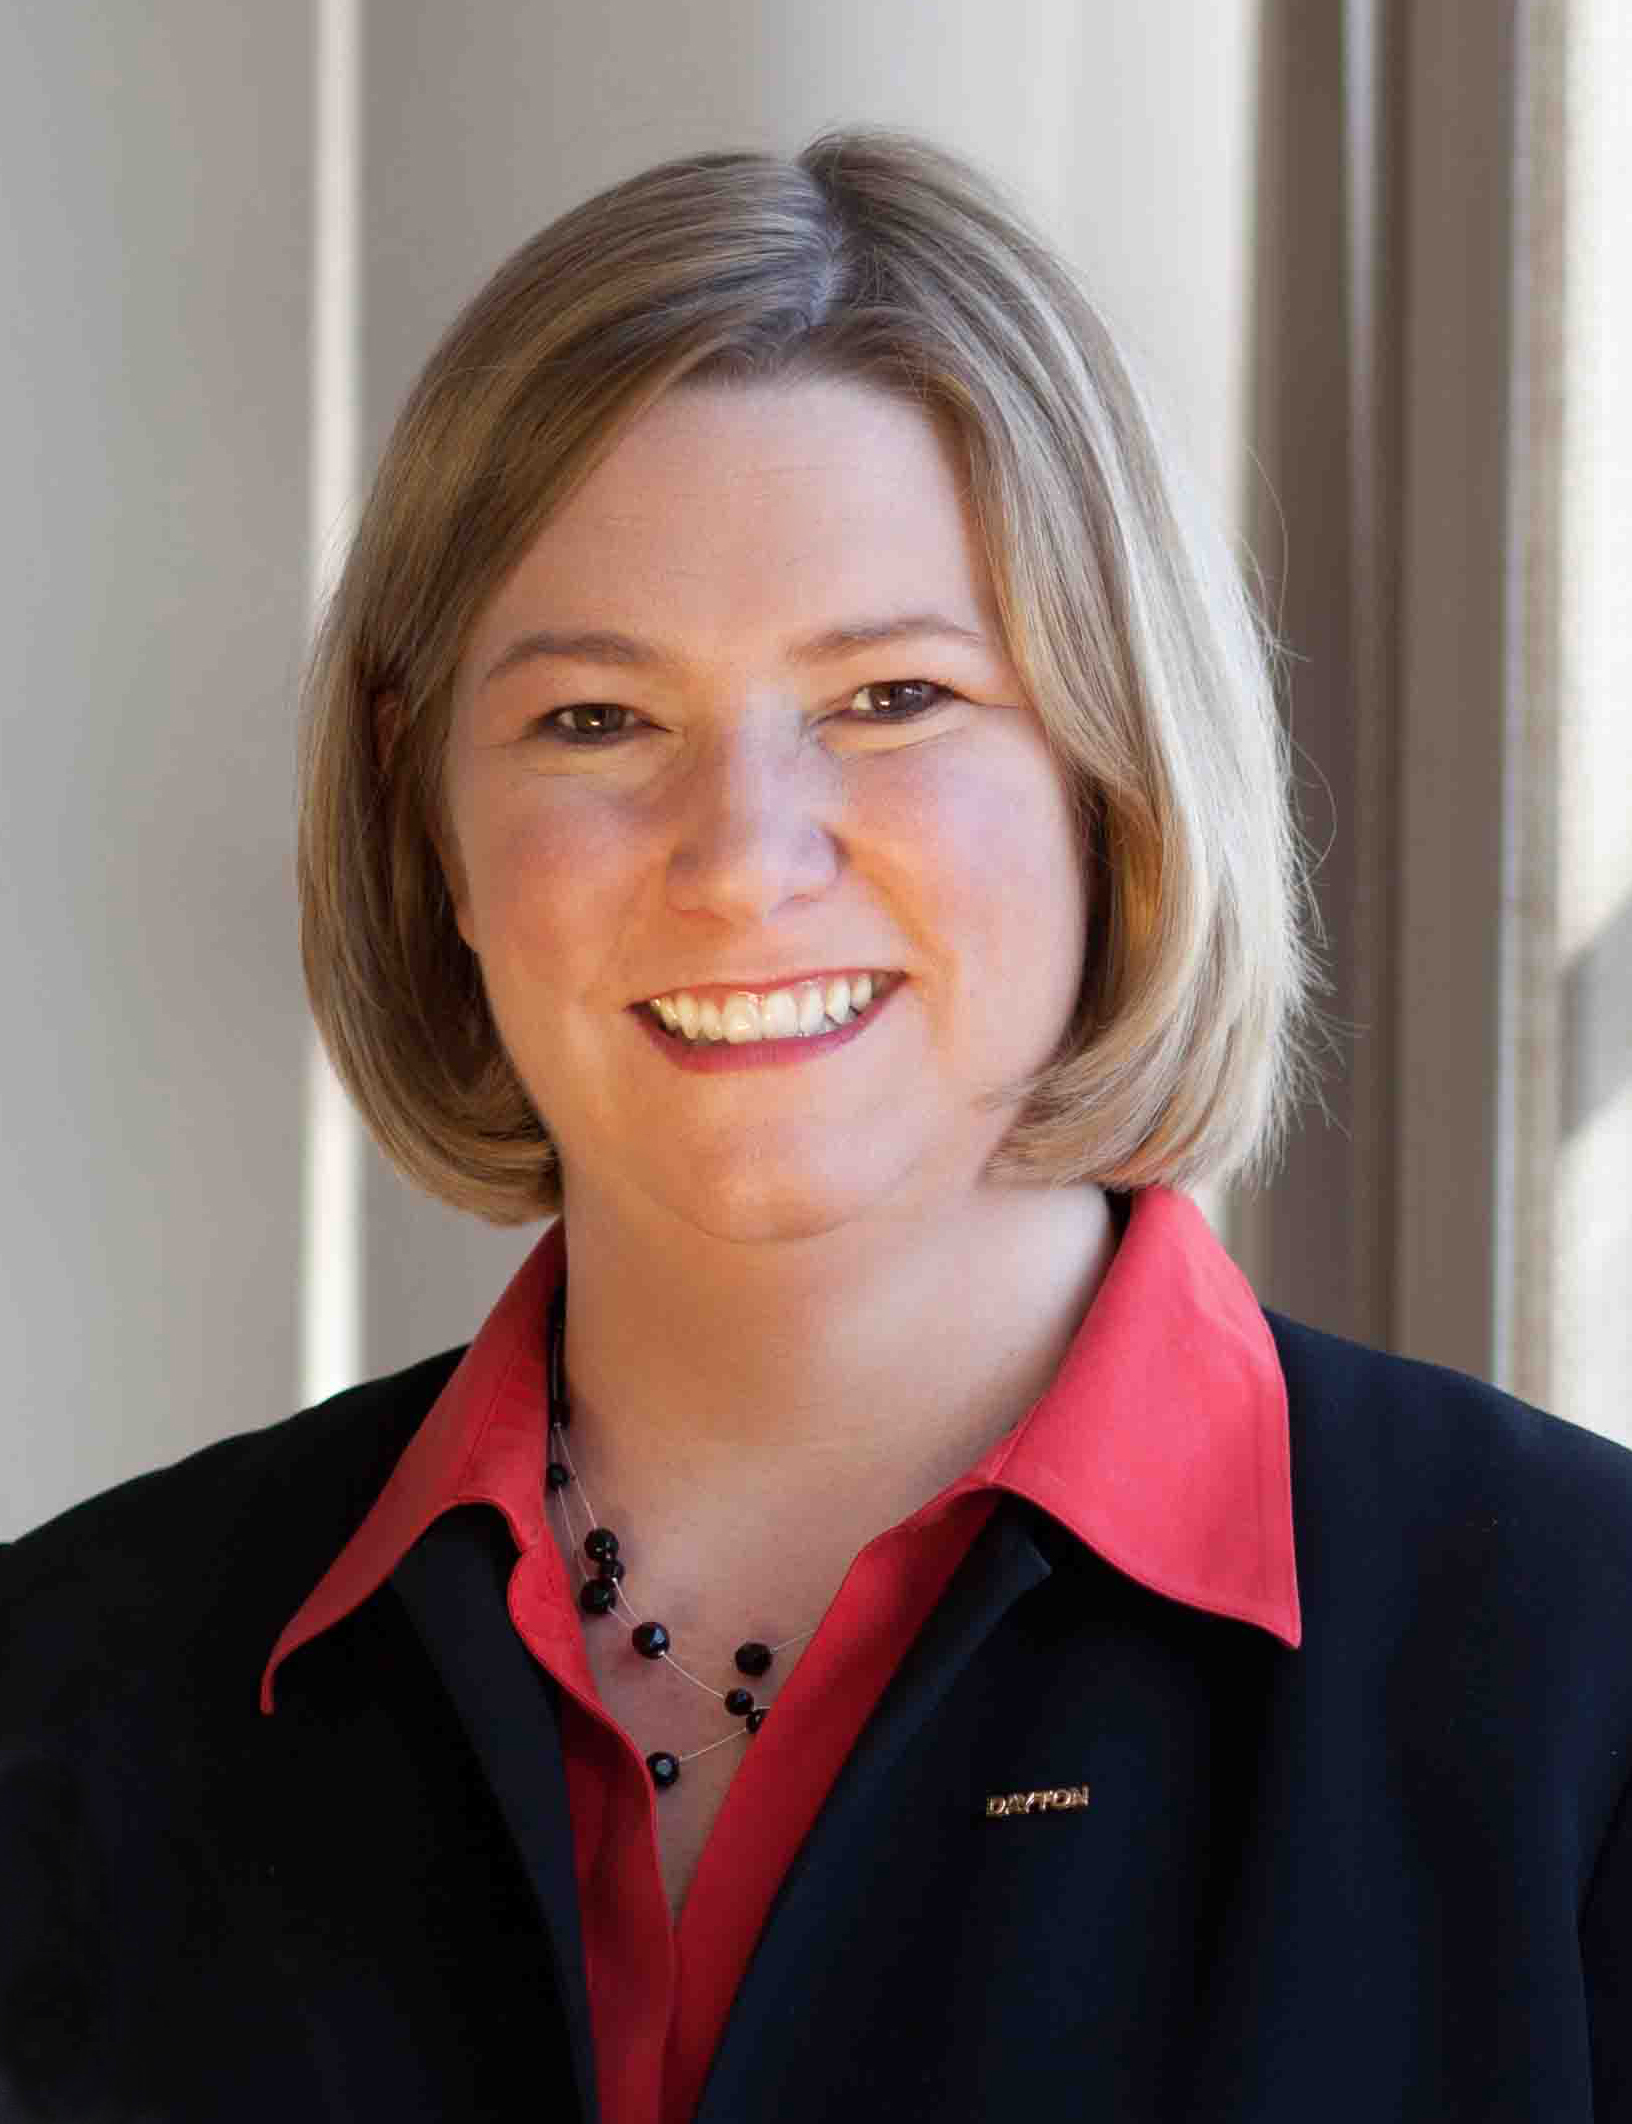 Dayton Mayor Nan Whaley